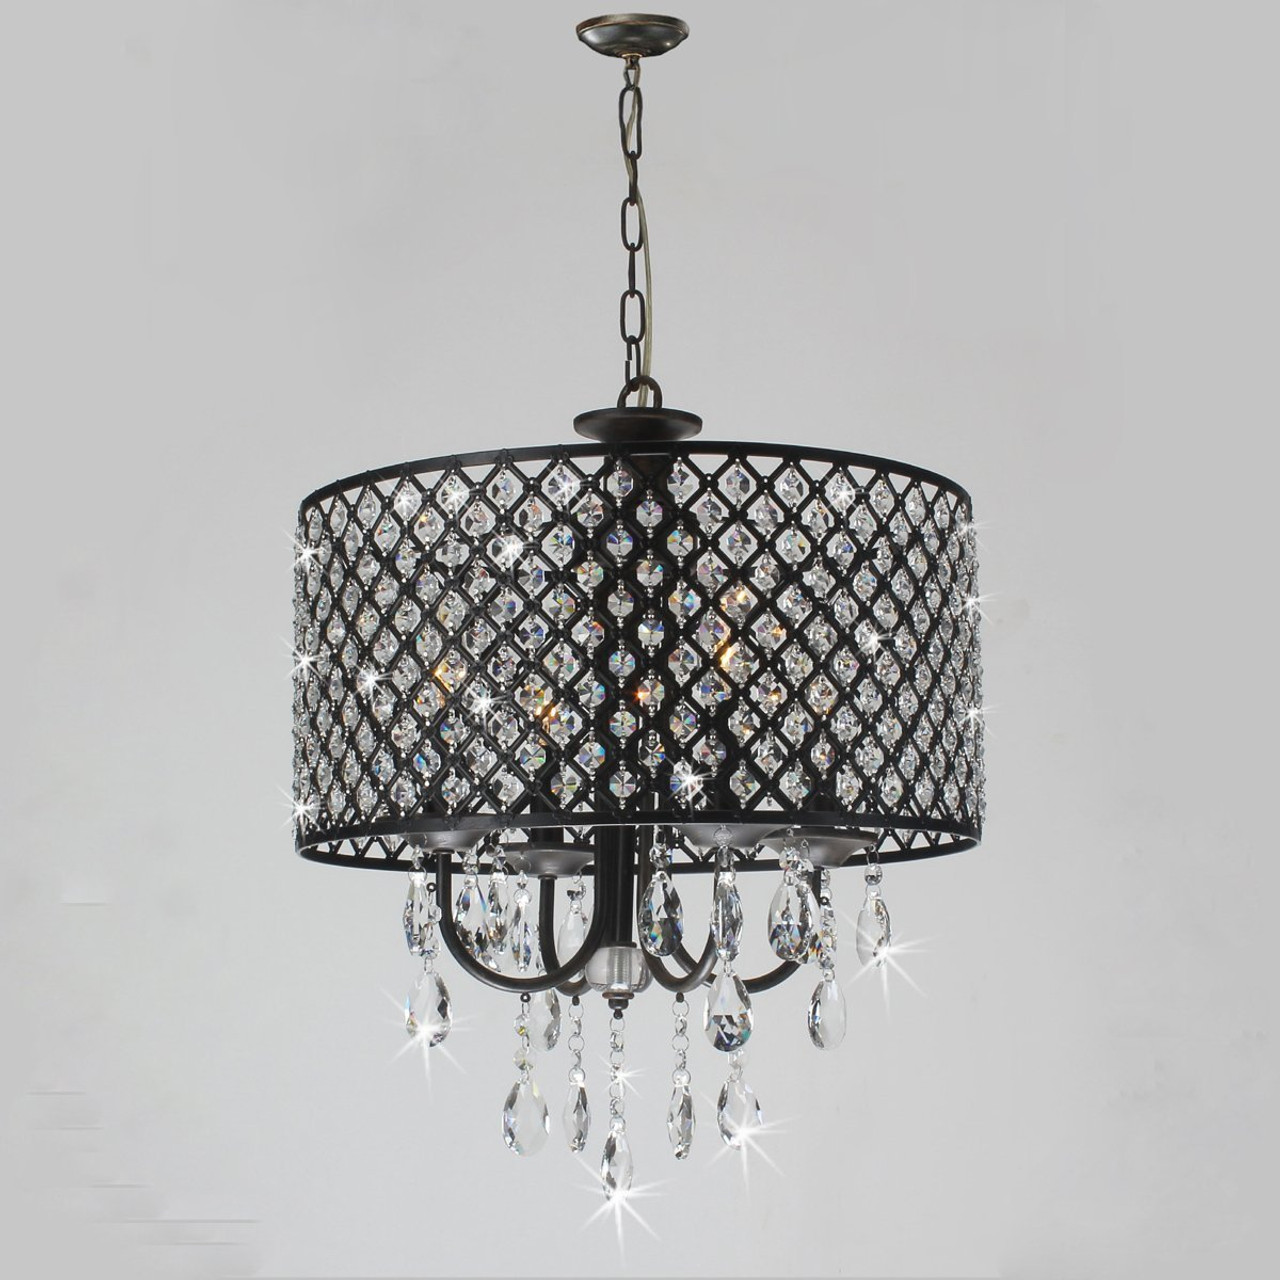 Diamond Life Antique Black 4 Light Round Crystal Chandelier Pendant Ceiling Fixture By